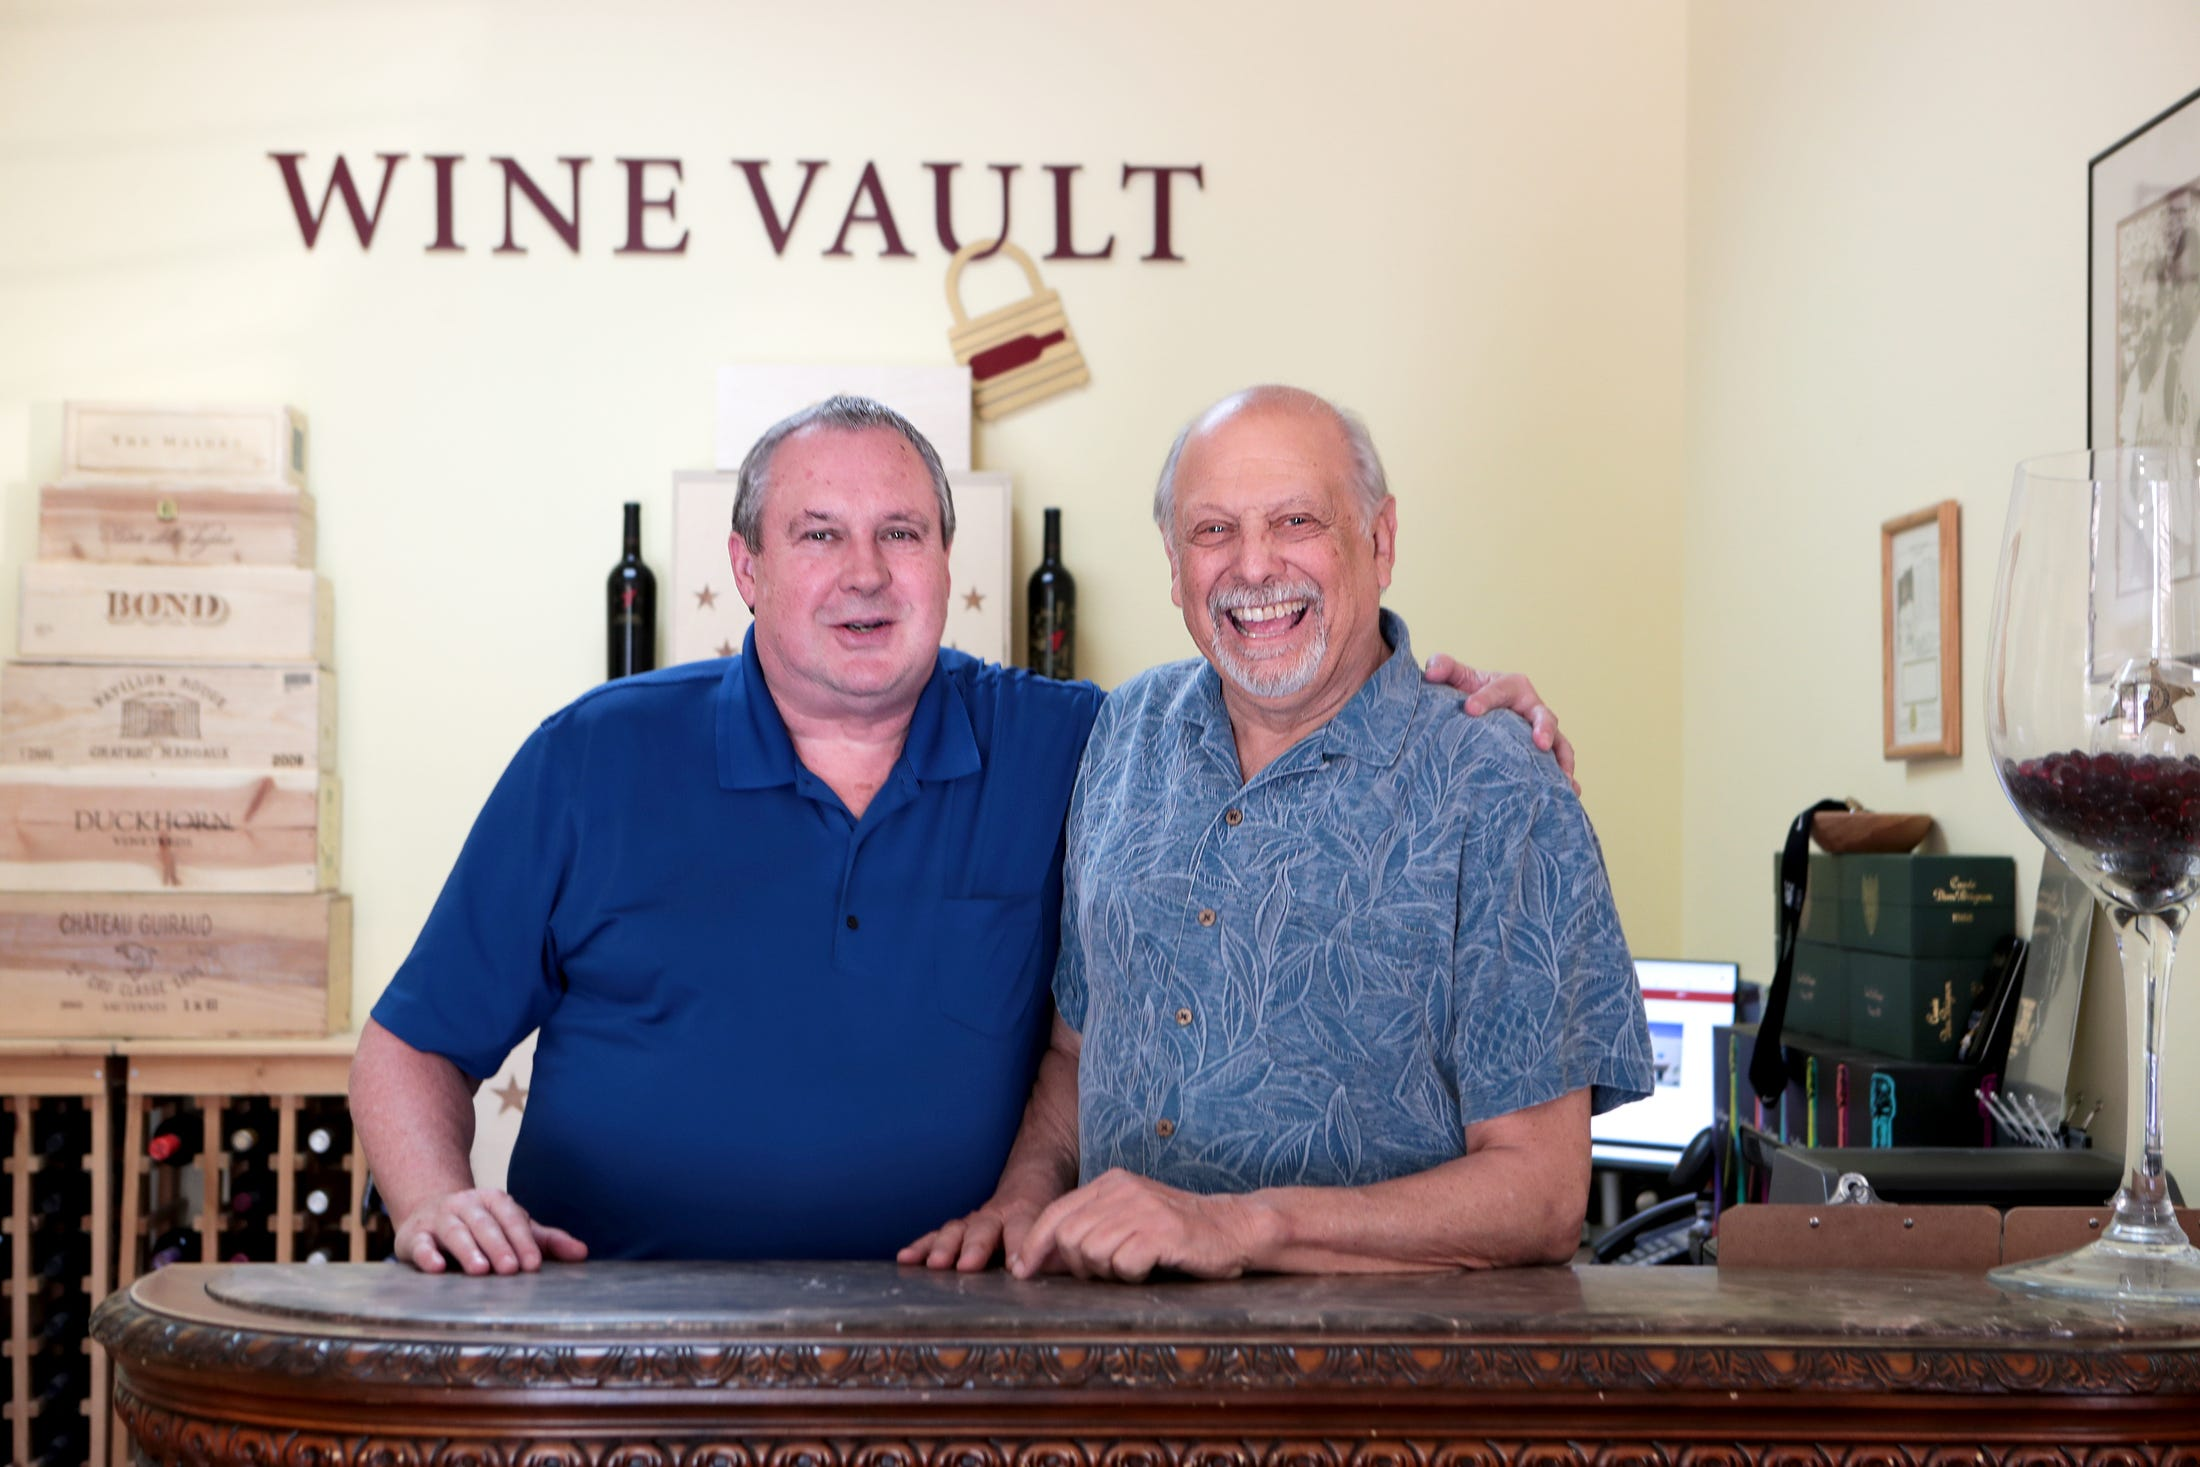 Wine Vault of the Desert general manager Jack Dixon, left, and director Ralph Iannuzzi are photographed inside their business in Palm Desert, Calif., on Wednesday, October 16, 2019. Their business has existed for about 10 years.